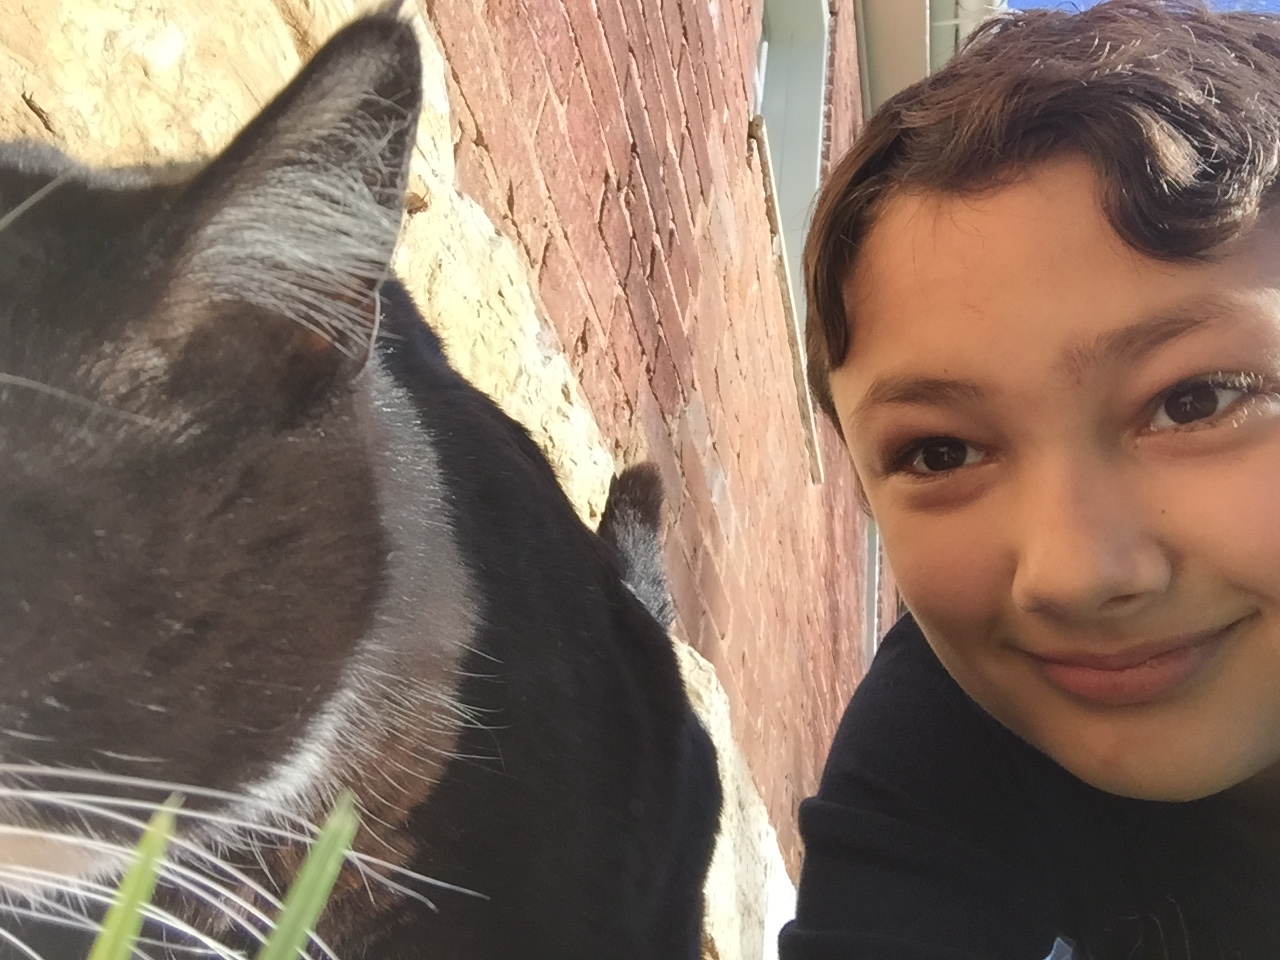 Xander's selfie with a random barn cat - at quaker village in Danville, KY.